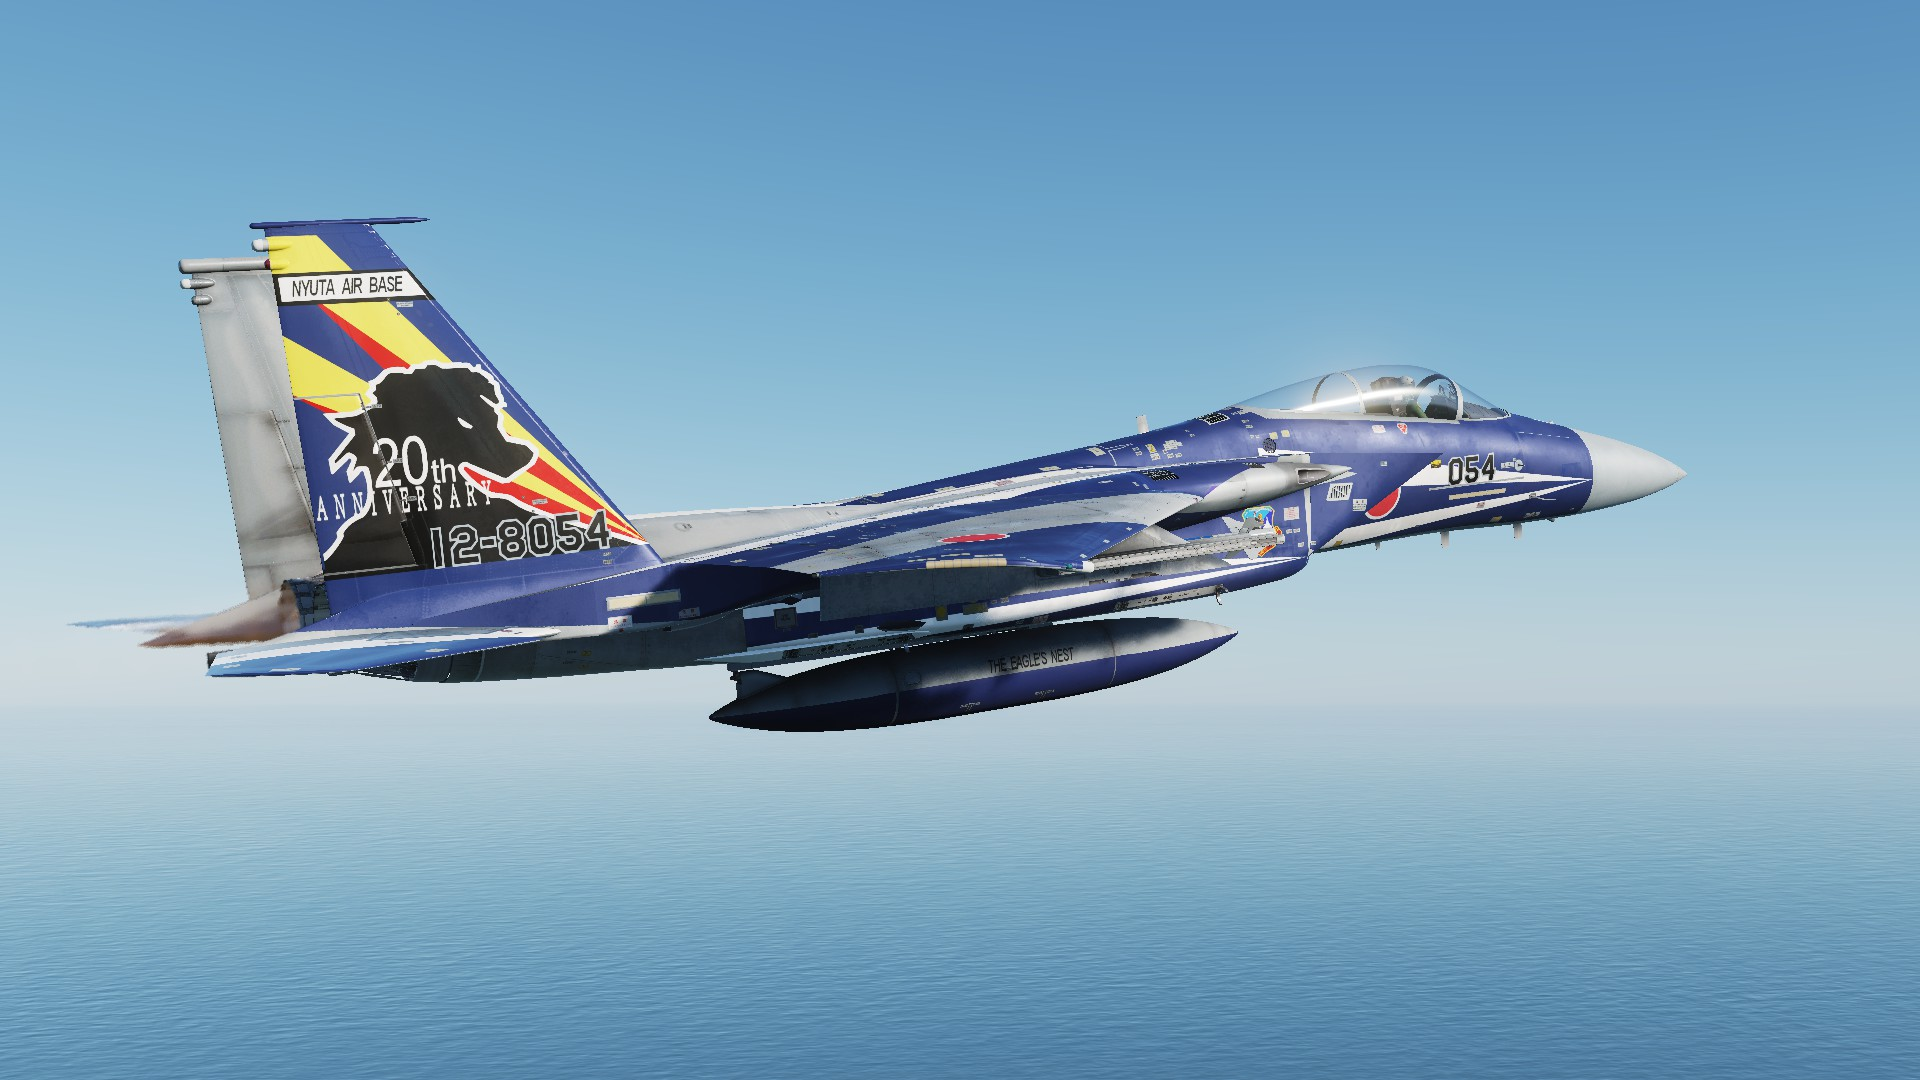 JASDF 23rd Fighter Training SQ 12-8054 20th Anniversary Special Painting {FICTIONAL}